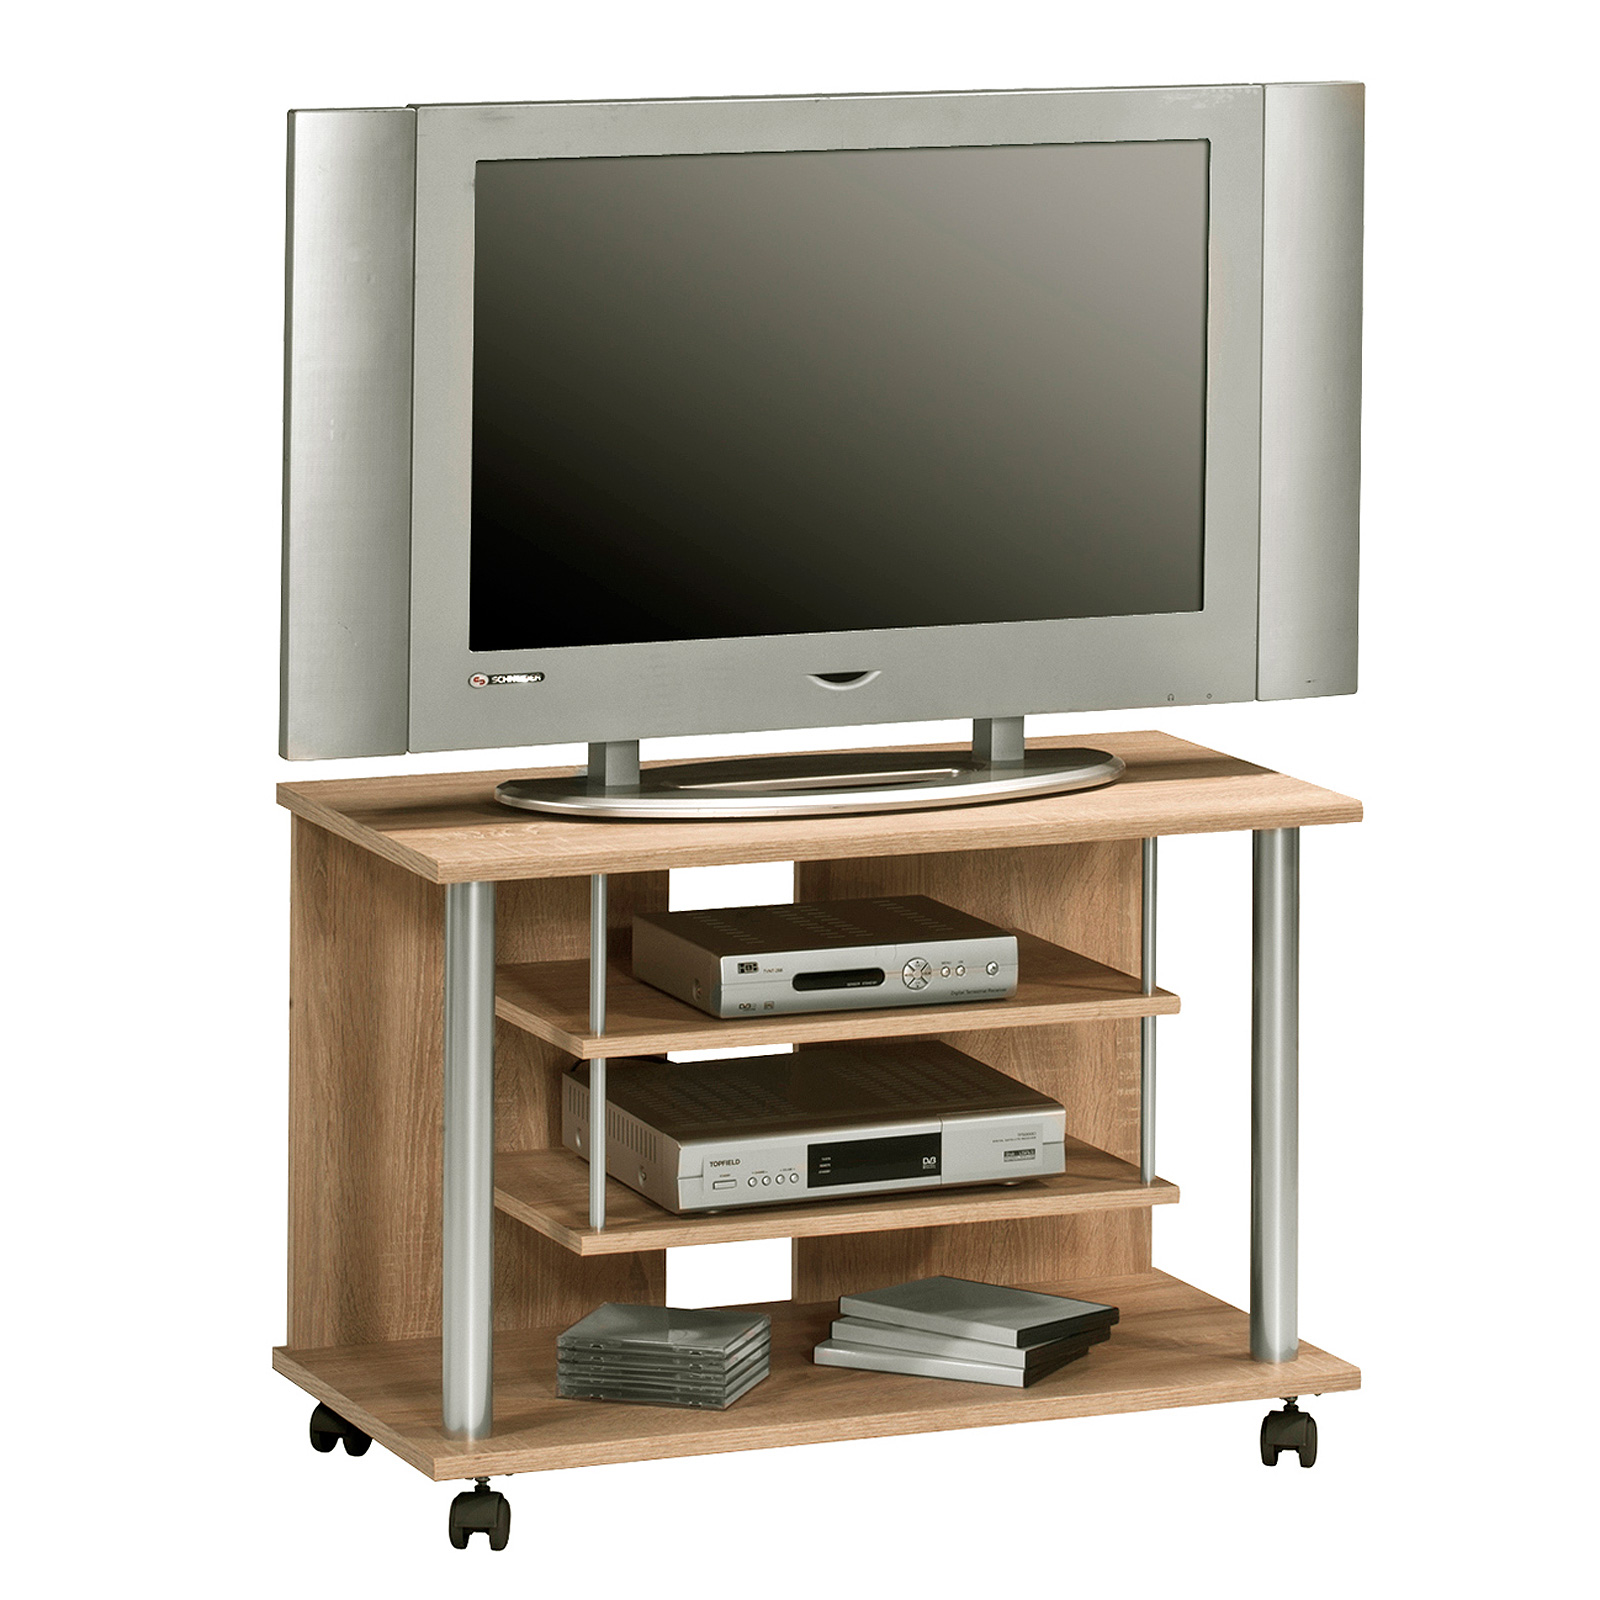 tv schrank mit rollen inspirierendes design f r wohnm bel. Black Bedroom Furniture Sets. Home Design Ideas